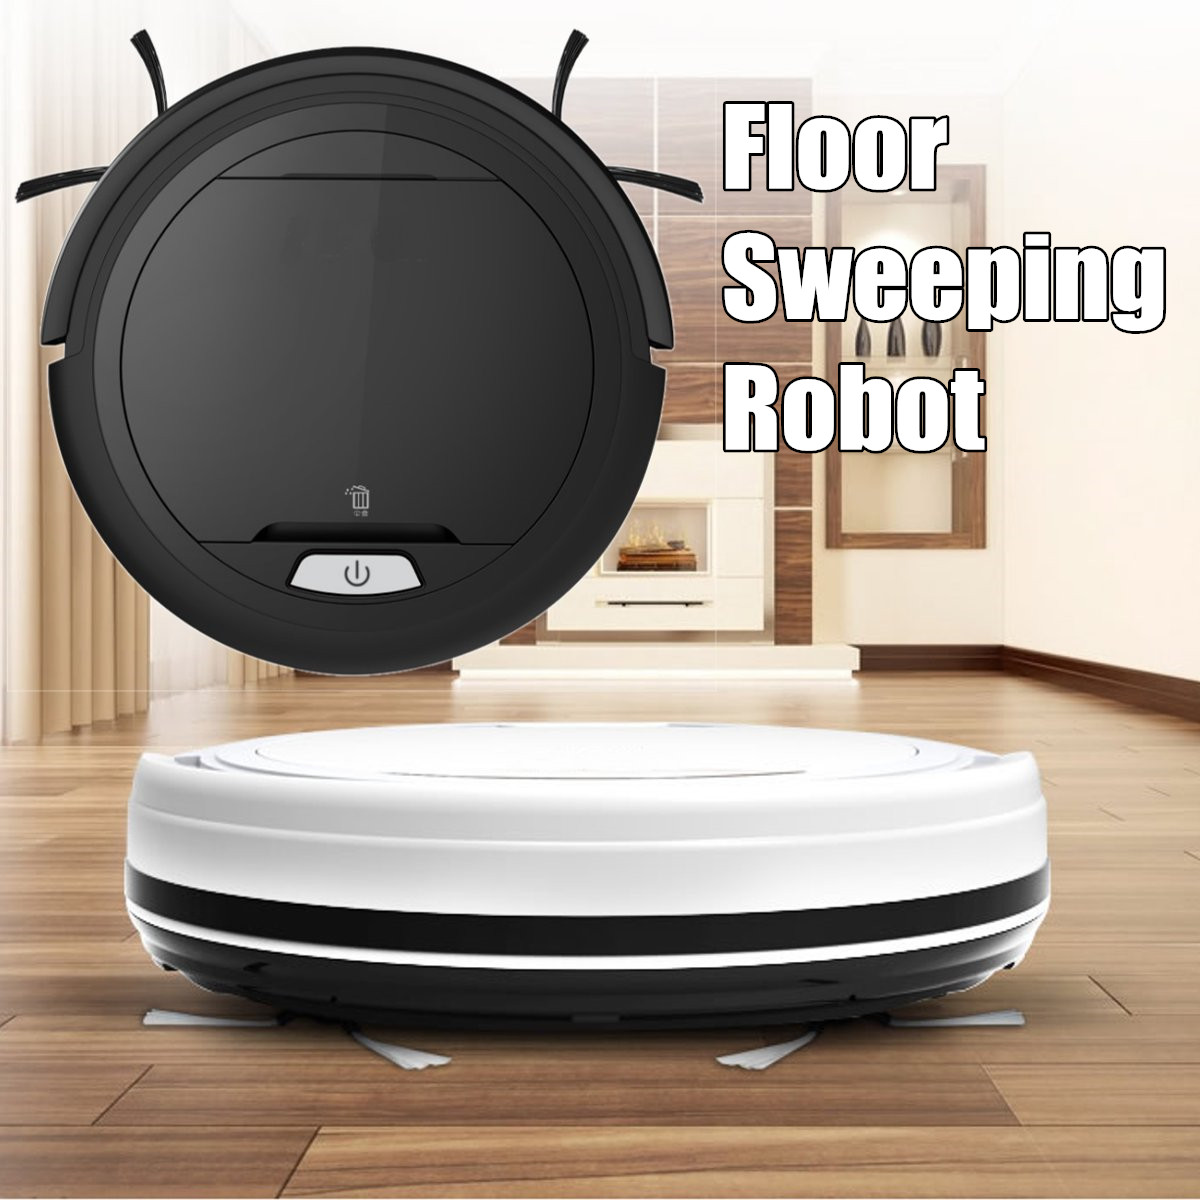 Cordless Robotic Vacuum Cleaner Low Noise Household Intelligent Vacuums Robot Sweeper Automatic Floor Cleaner  Strong SweepingCordless Robotic Vacuum Cleaner Low Noise Household Intelligent Vacuums Robot Sweeper Automatic Floor Cleaner  Strong Sweeping